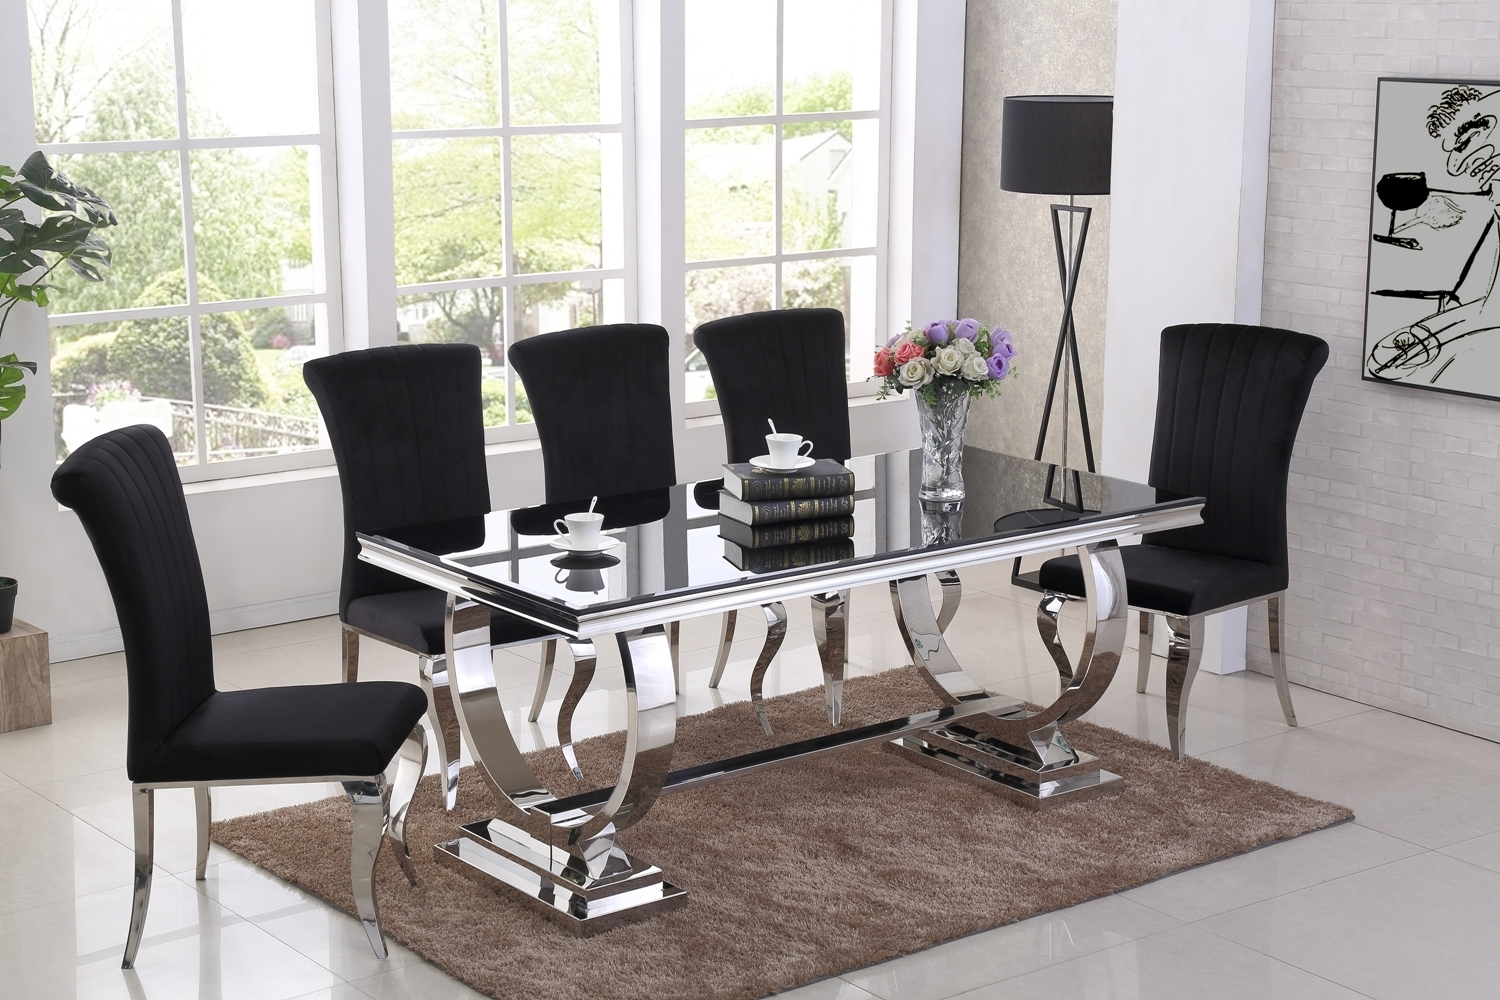 Awesome Velvet Chair Glass Table